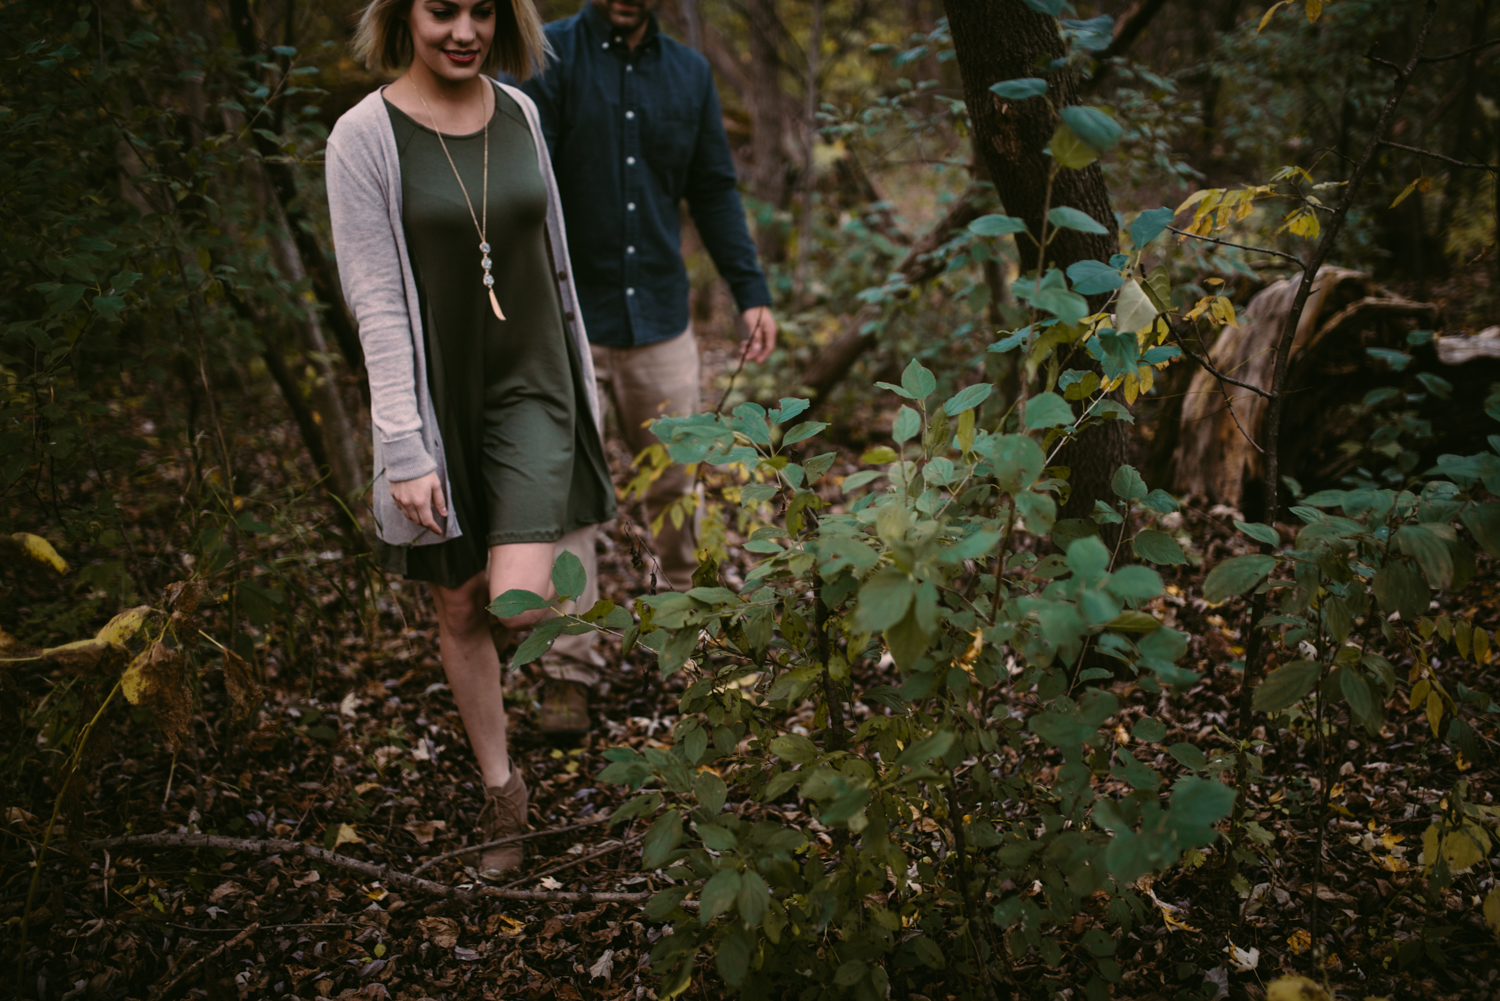 authentic-engagement-photography-minneapolis.jpg